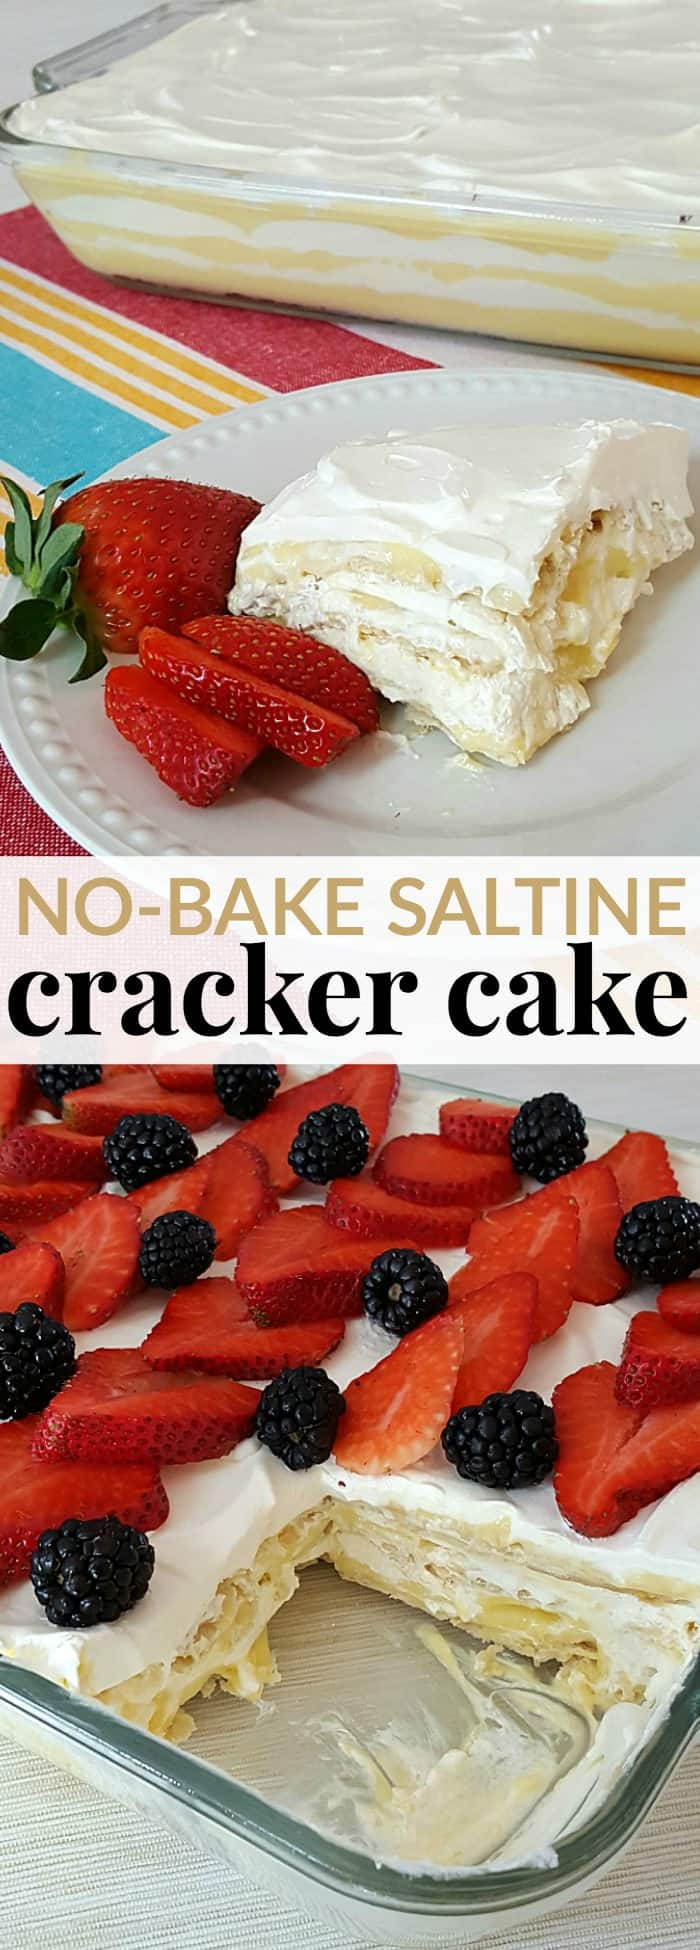 Delicious and easy no bake saltine cracker cake - also known as crack cake!